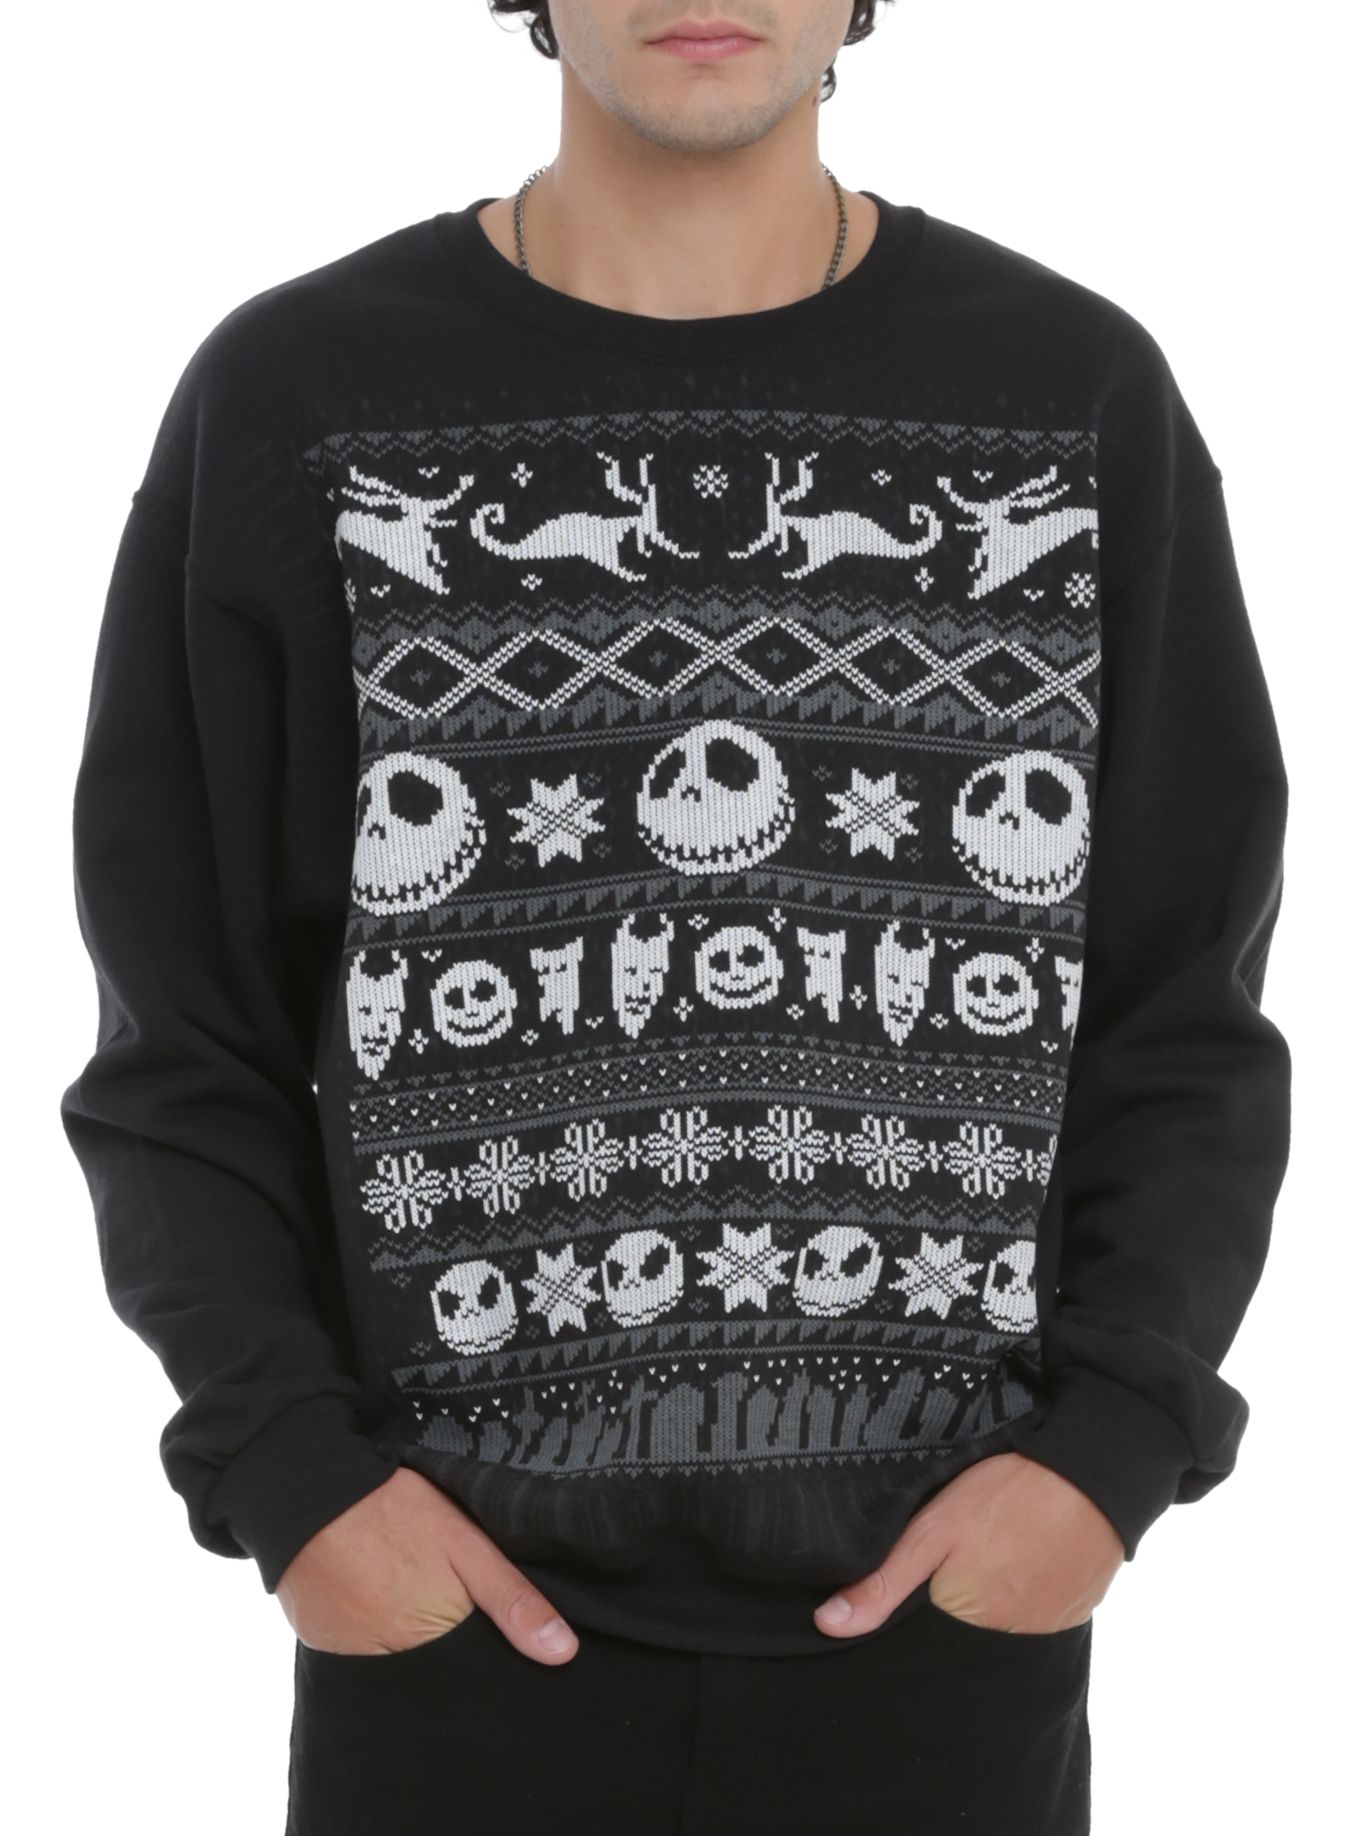 The Nightmare Before Christmas Fair Isle Crewneck Pullover 3XL ...